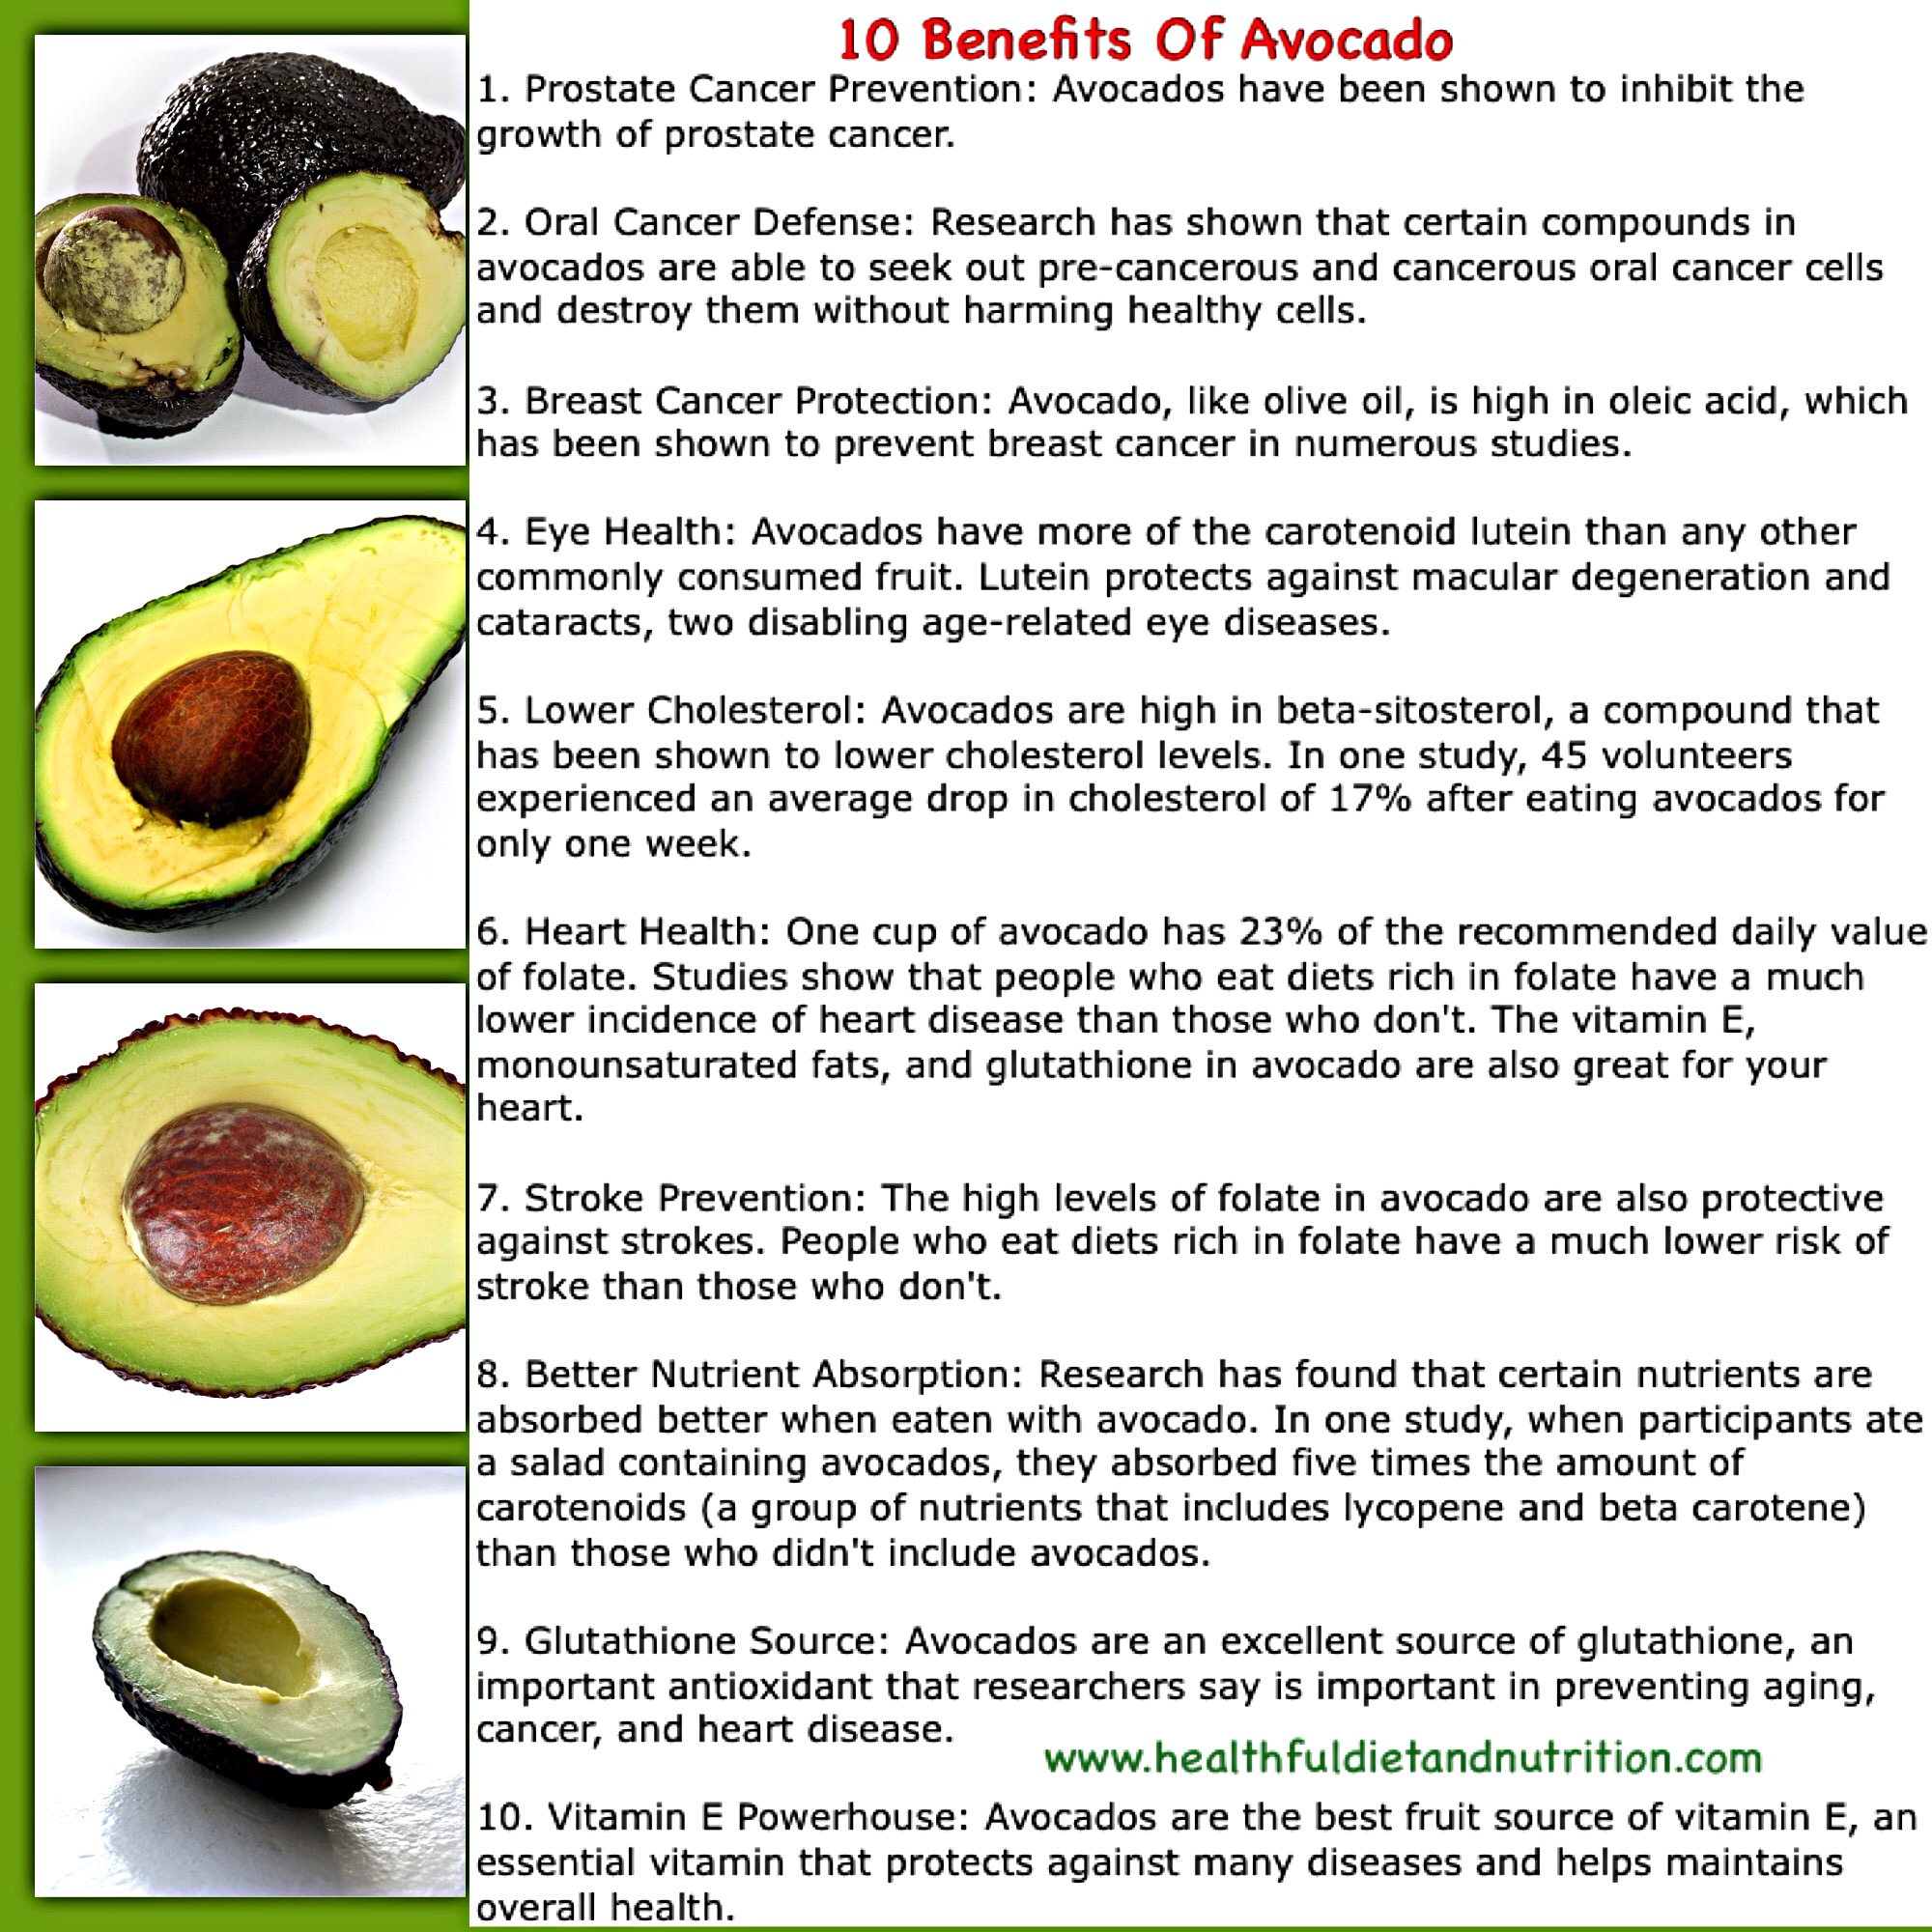 10 Benefits of Avocado